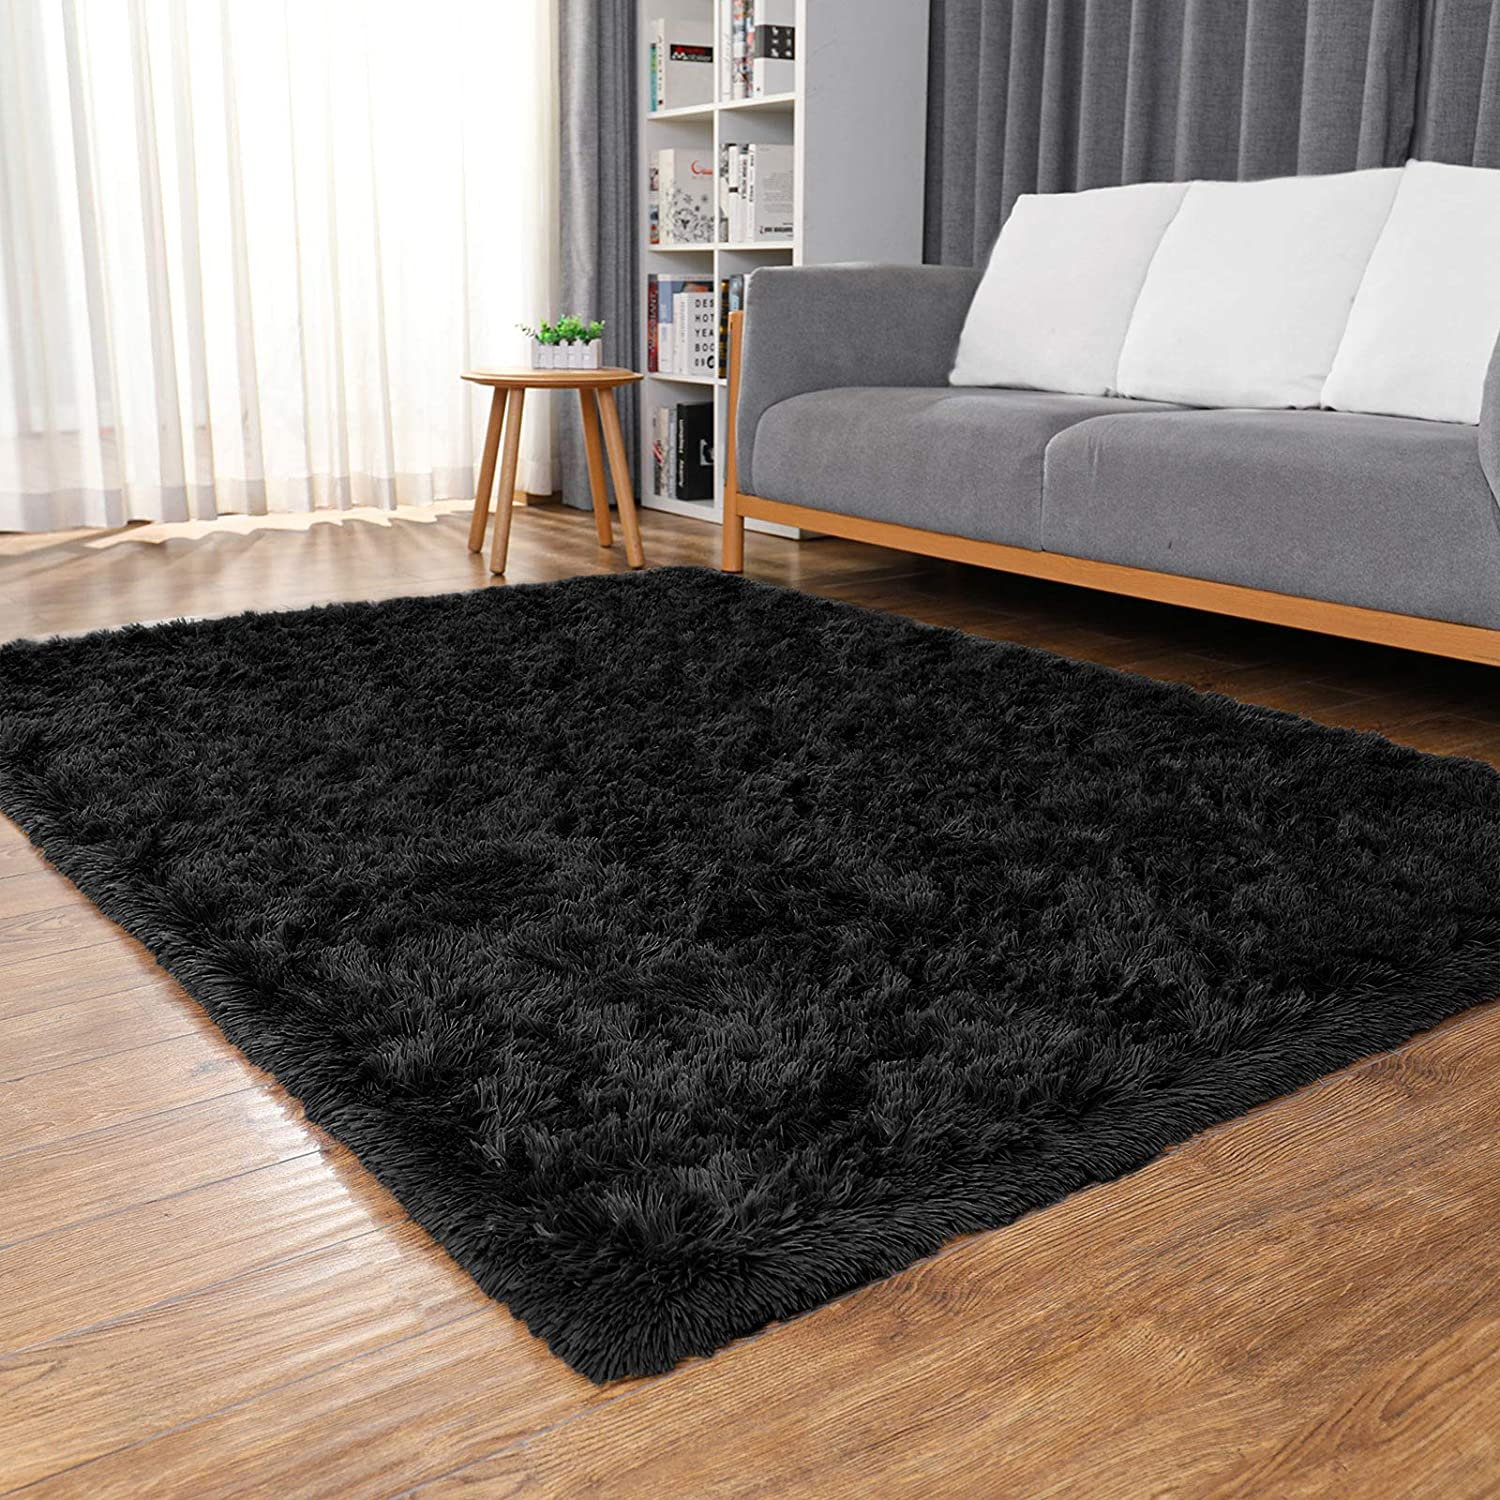 Ophanie Machine Washable Fluffy Area Rugs for Living Room, Ultra-Luxurious Soft and Thick Faux Fur Shag Rug Non-Slip Carpet for Bedroom, Kids Baby Room, Nursery Modern Decor Rug, 4x5.3 Feet Black